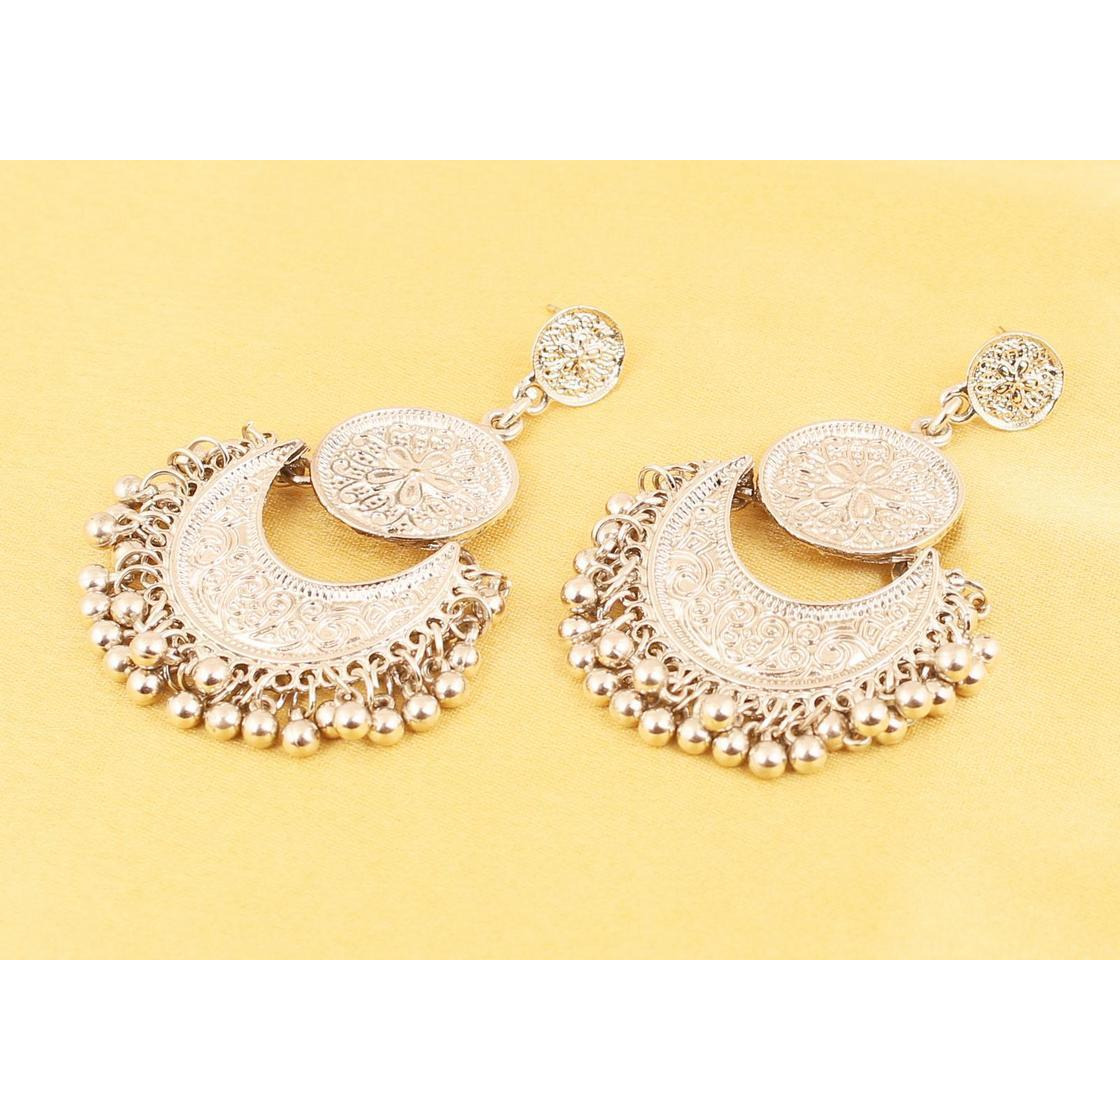 Indian hammered embossed beads chaand earrings in silver tone  for women